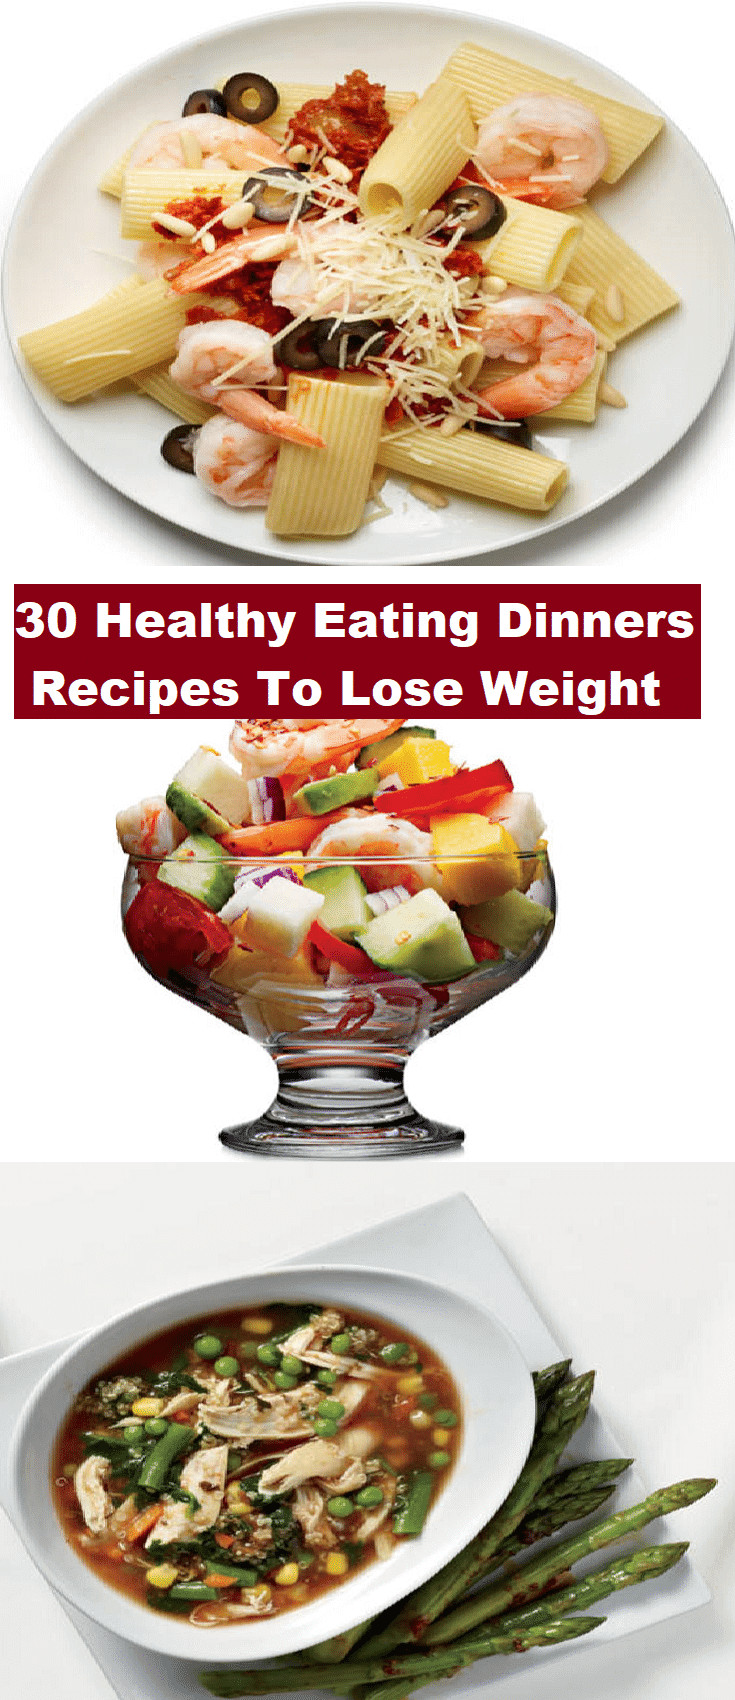 Healthy Dinners To Lose Weight  30 Healthy Eating Dinners Recipes To Lose Weight Healthy